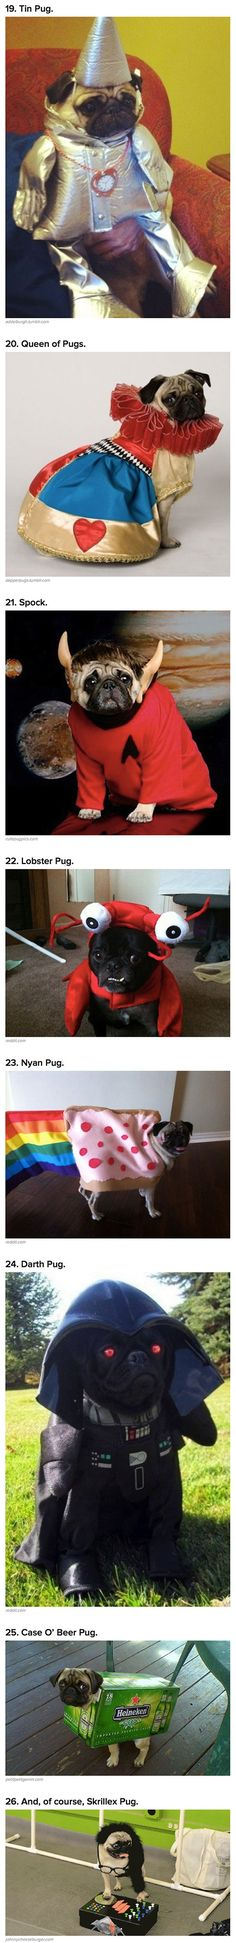 26 Geeky Costumes That Show Why Pugs Love Halloween - TechEBlog